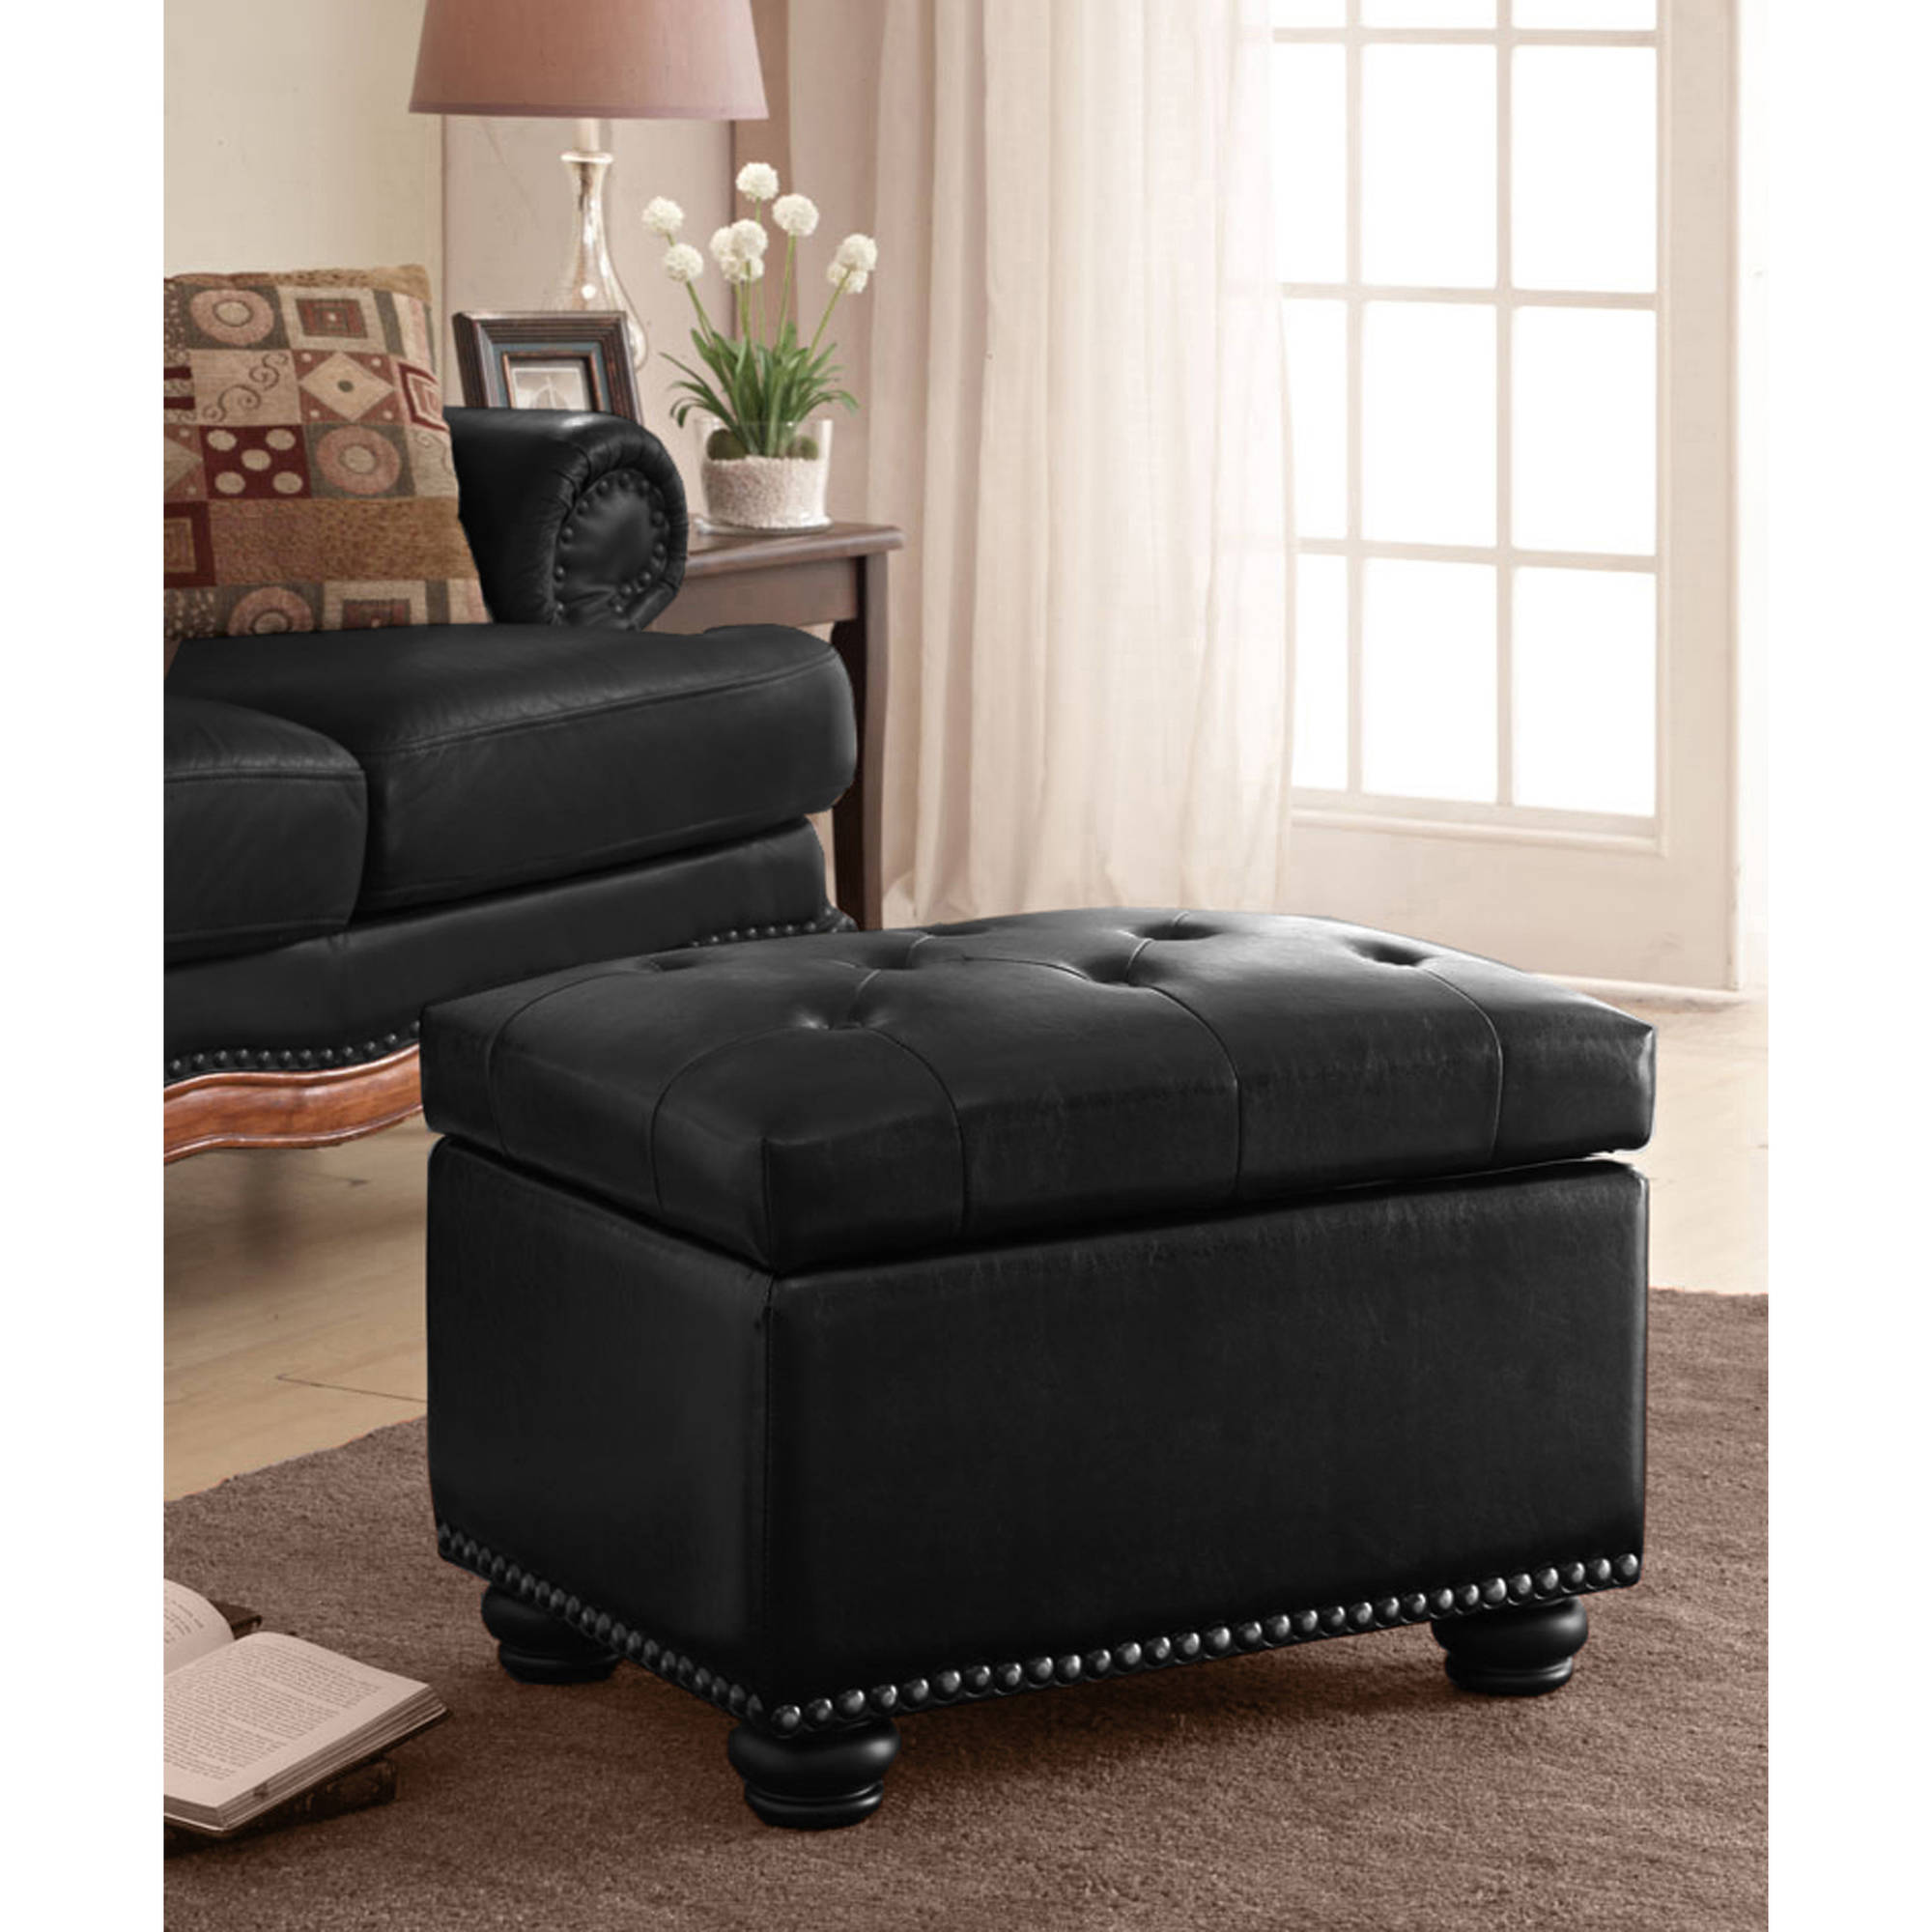 Convenience Concepts Designs4Comfort No Tools 5th Avenue Storage Ottoman, Multiple Colors